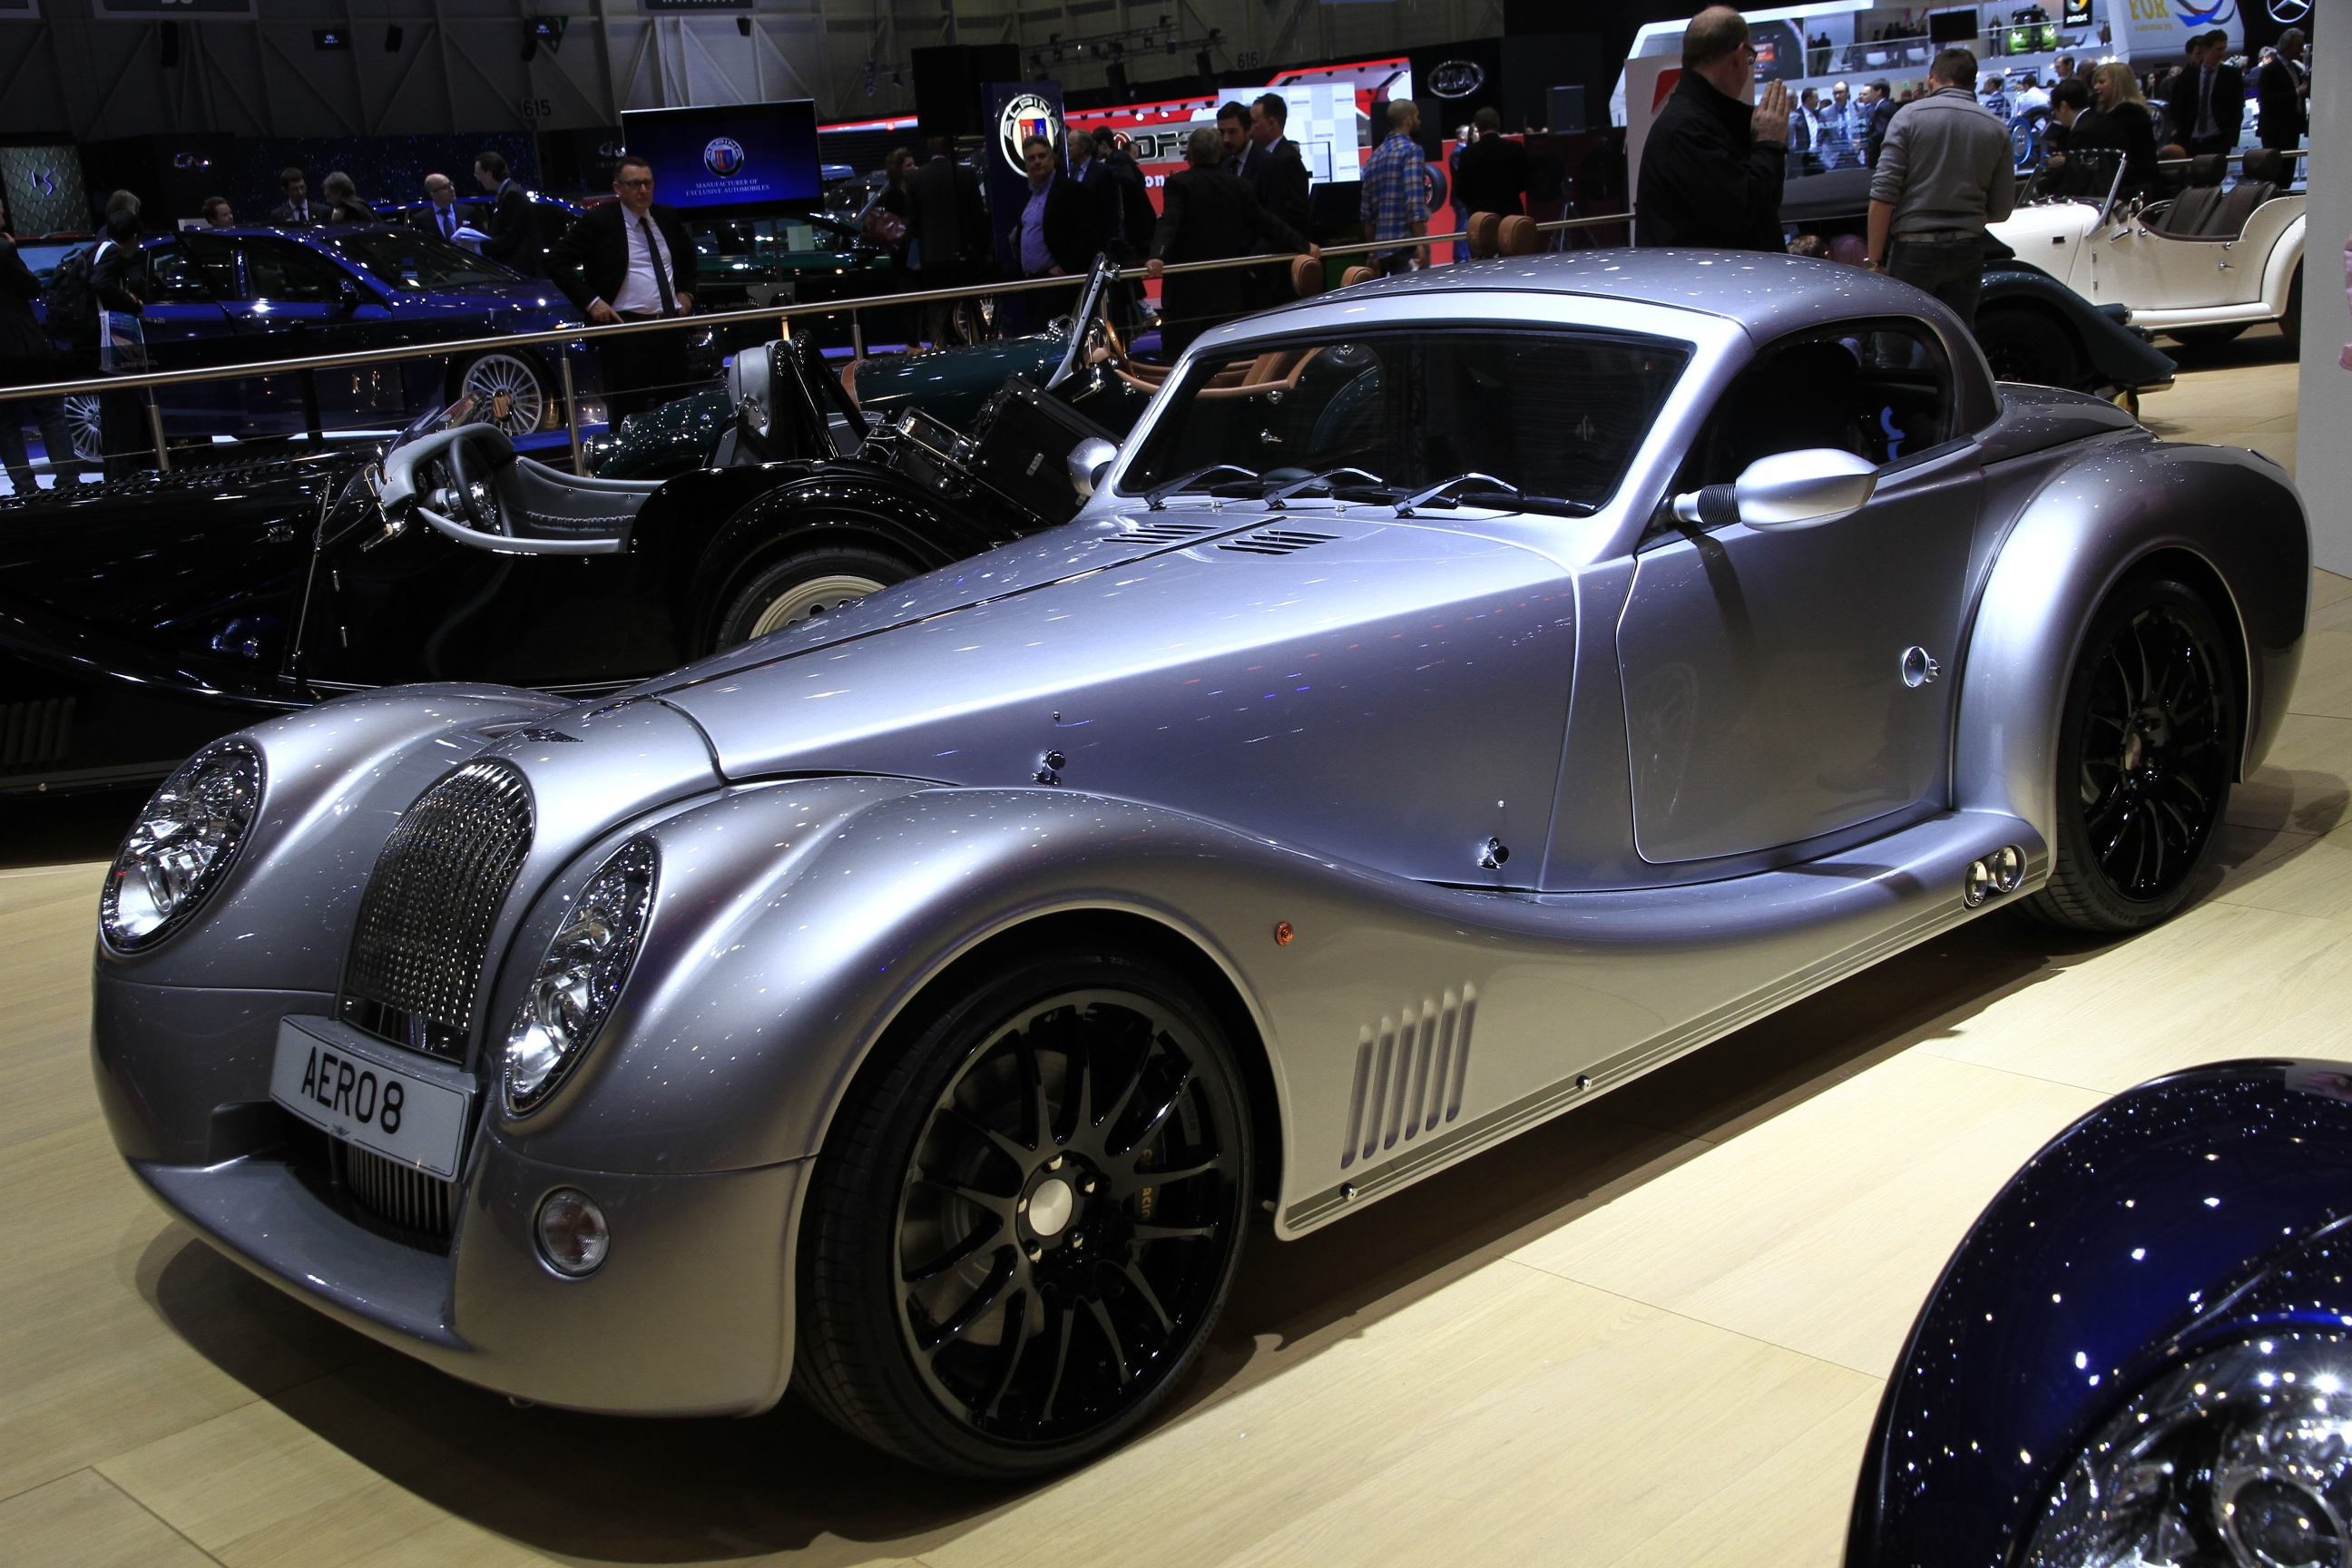 Morgan aero8 nouvelle vague en direct du salon de gen ve 2015 - Salon de geneve 2015 nouveaute ...